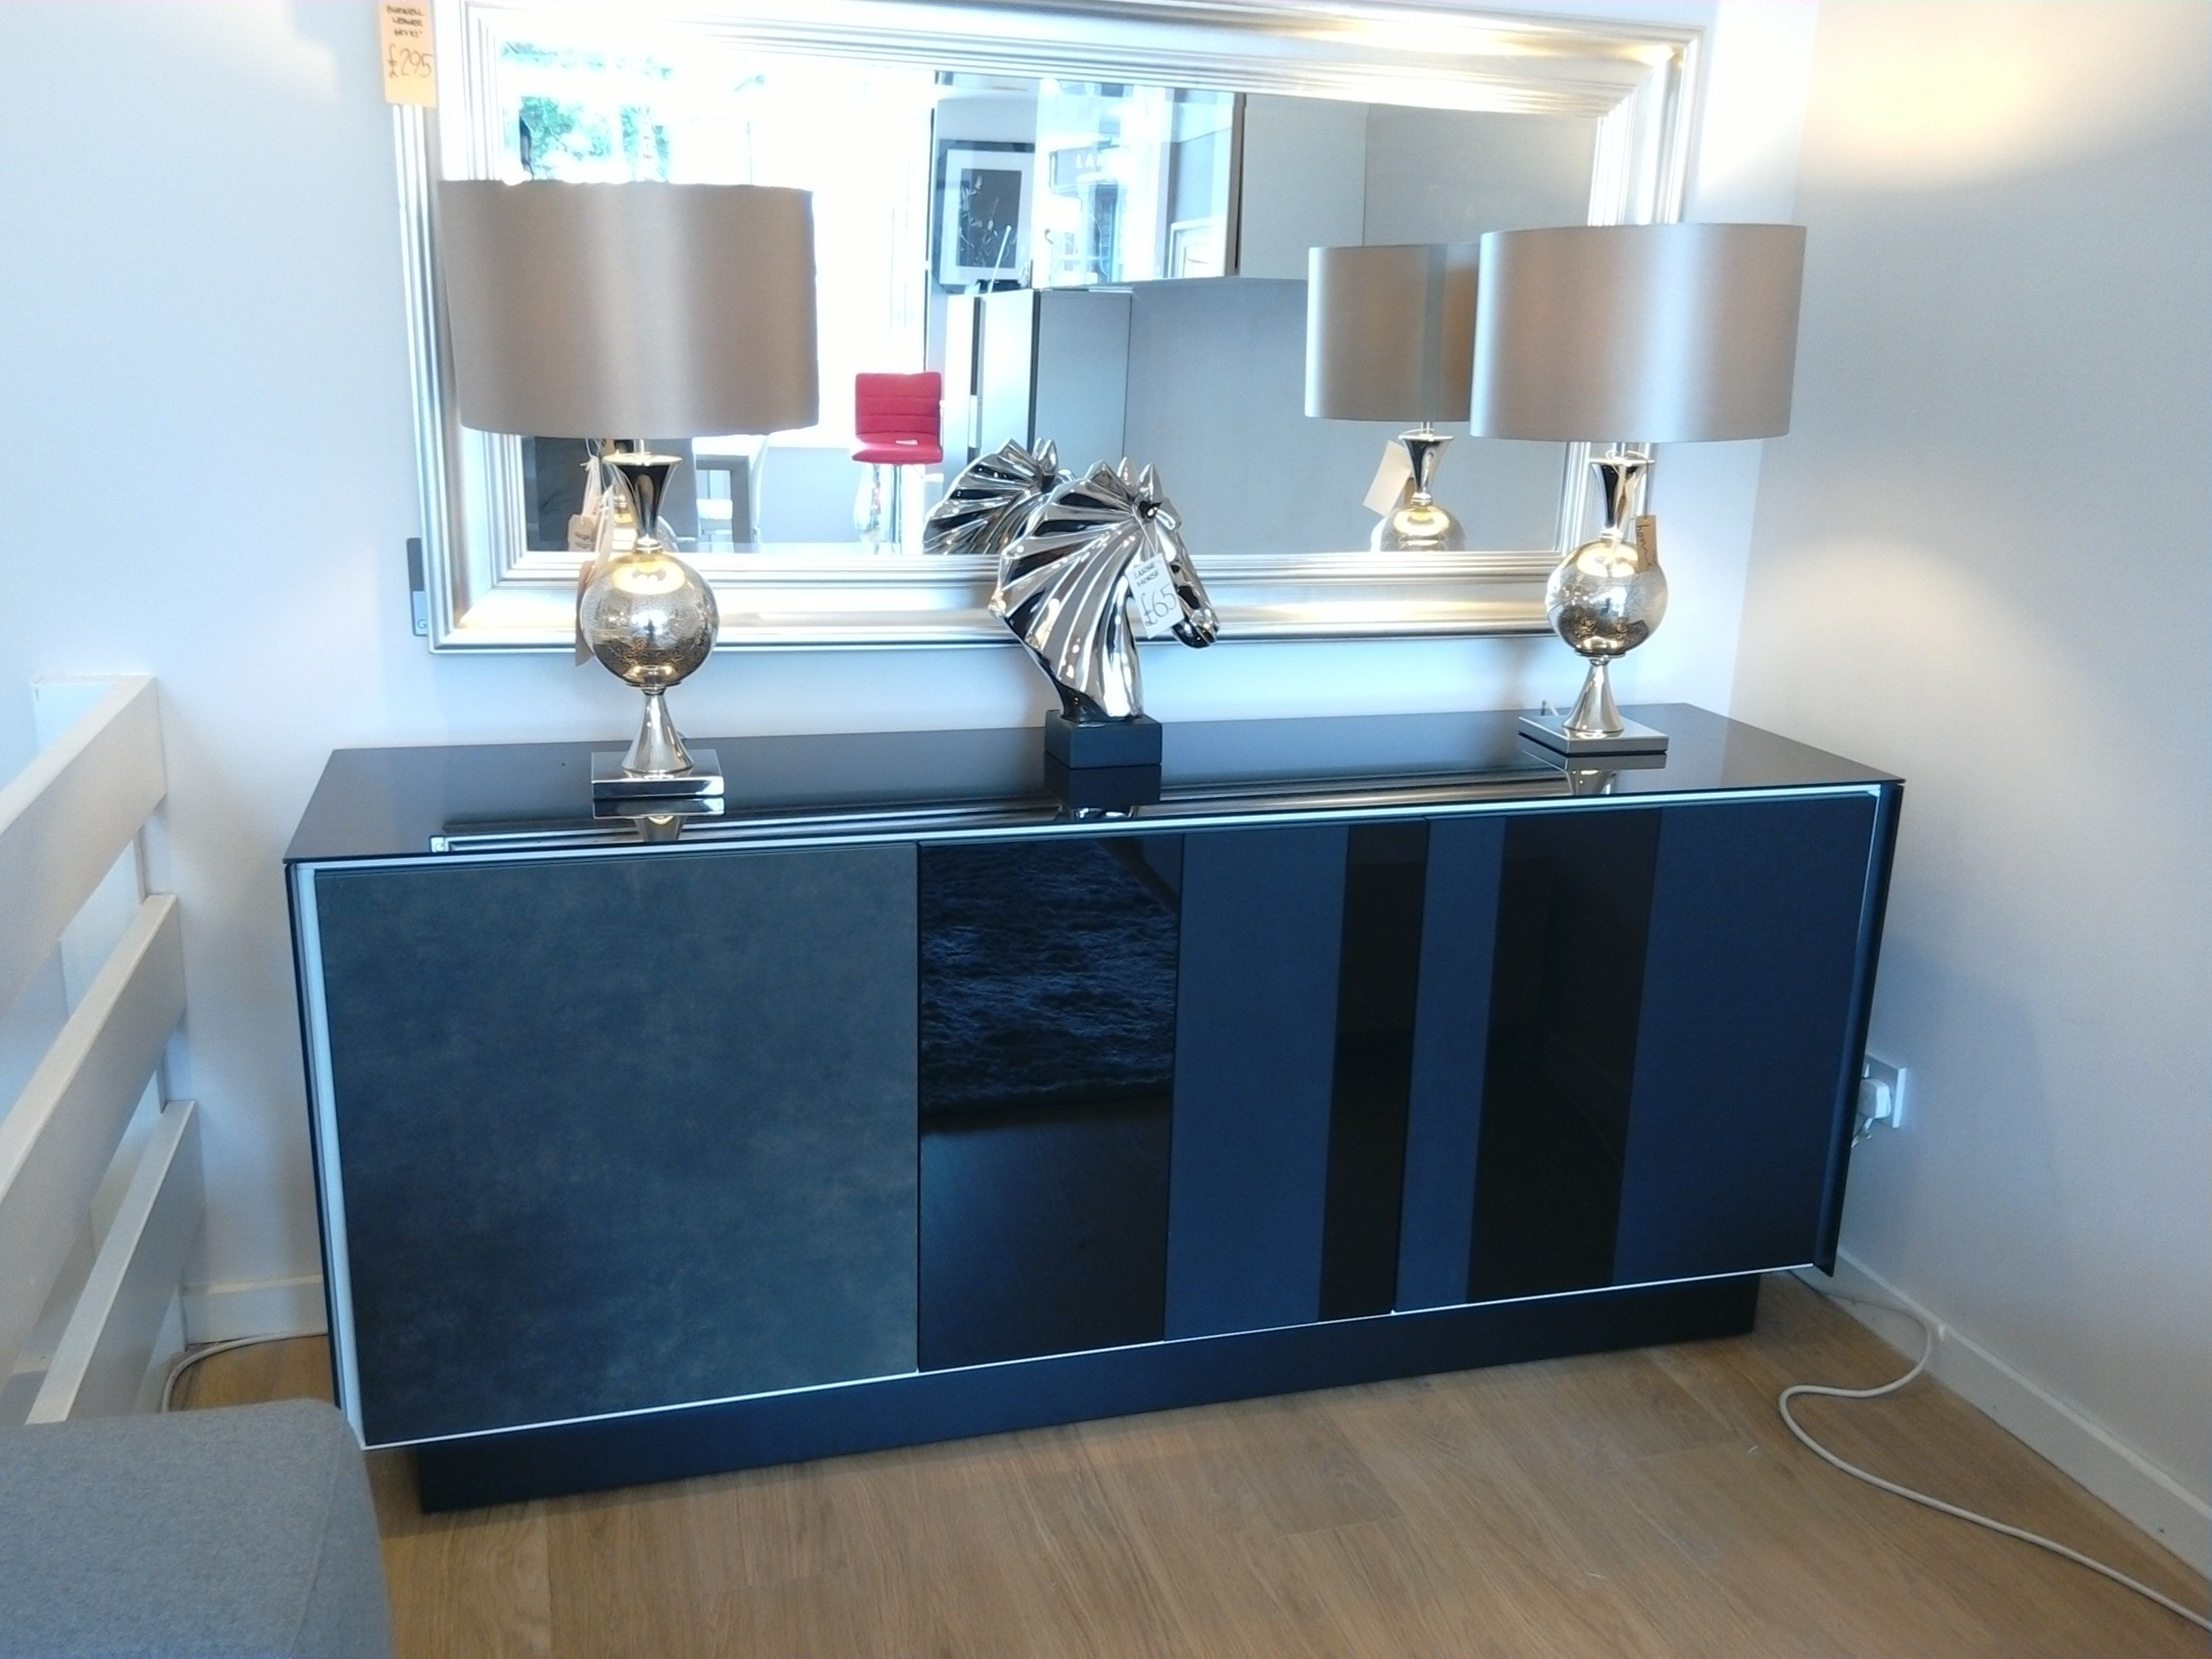 Sideboard from our Book range in black glass. Door fronts in ceramic and black glass lines alternating matt and gloss. Internal frame detail in white. Endless possibilities. Shown as displayed at our Surbiton showroom.